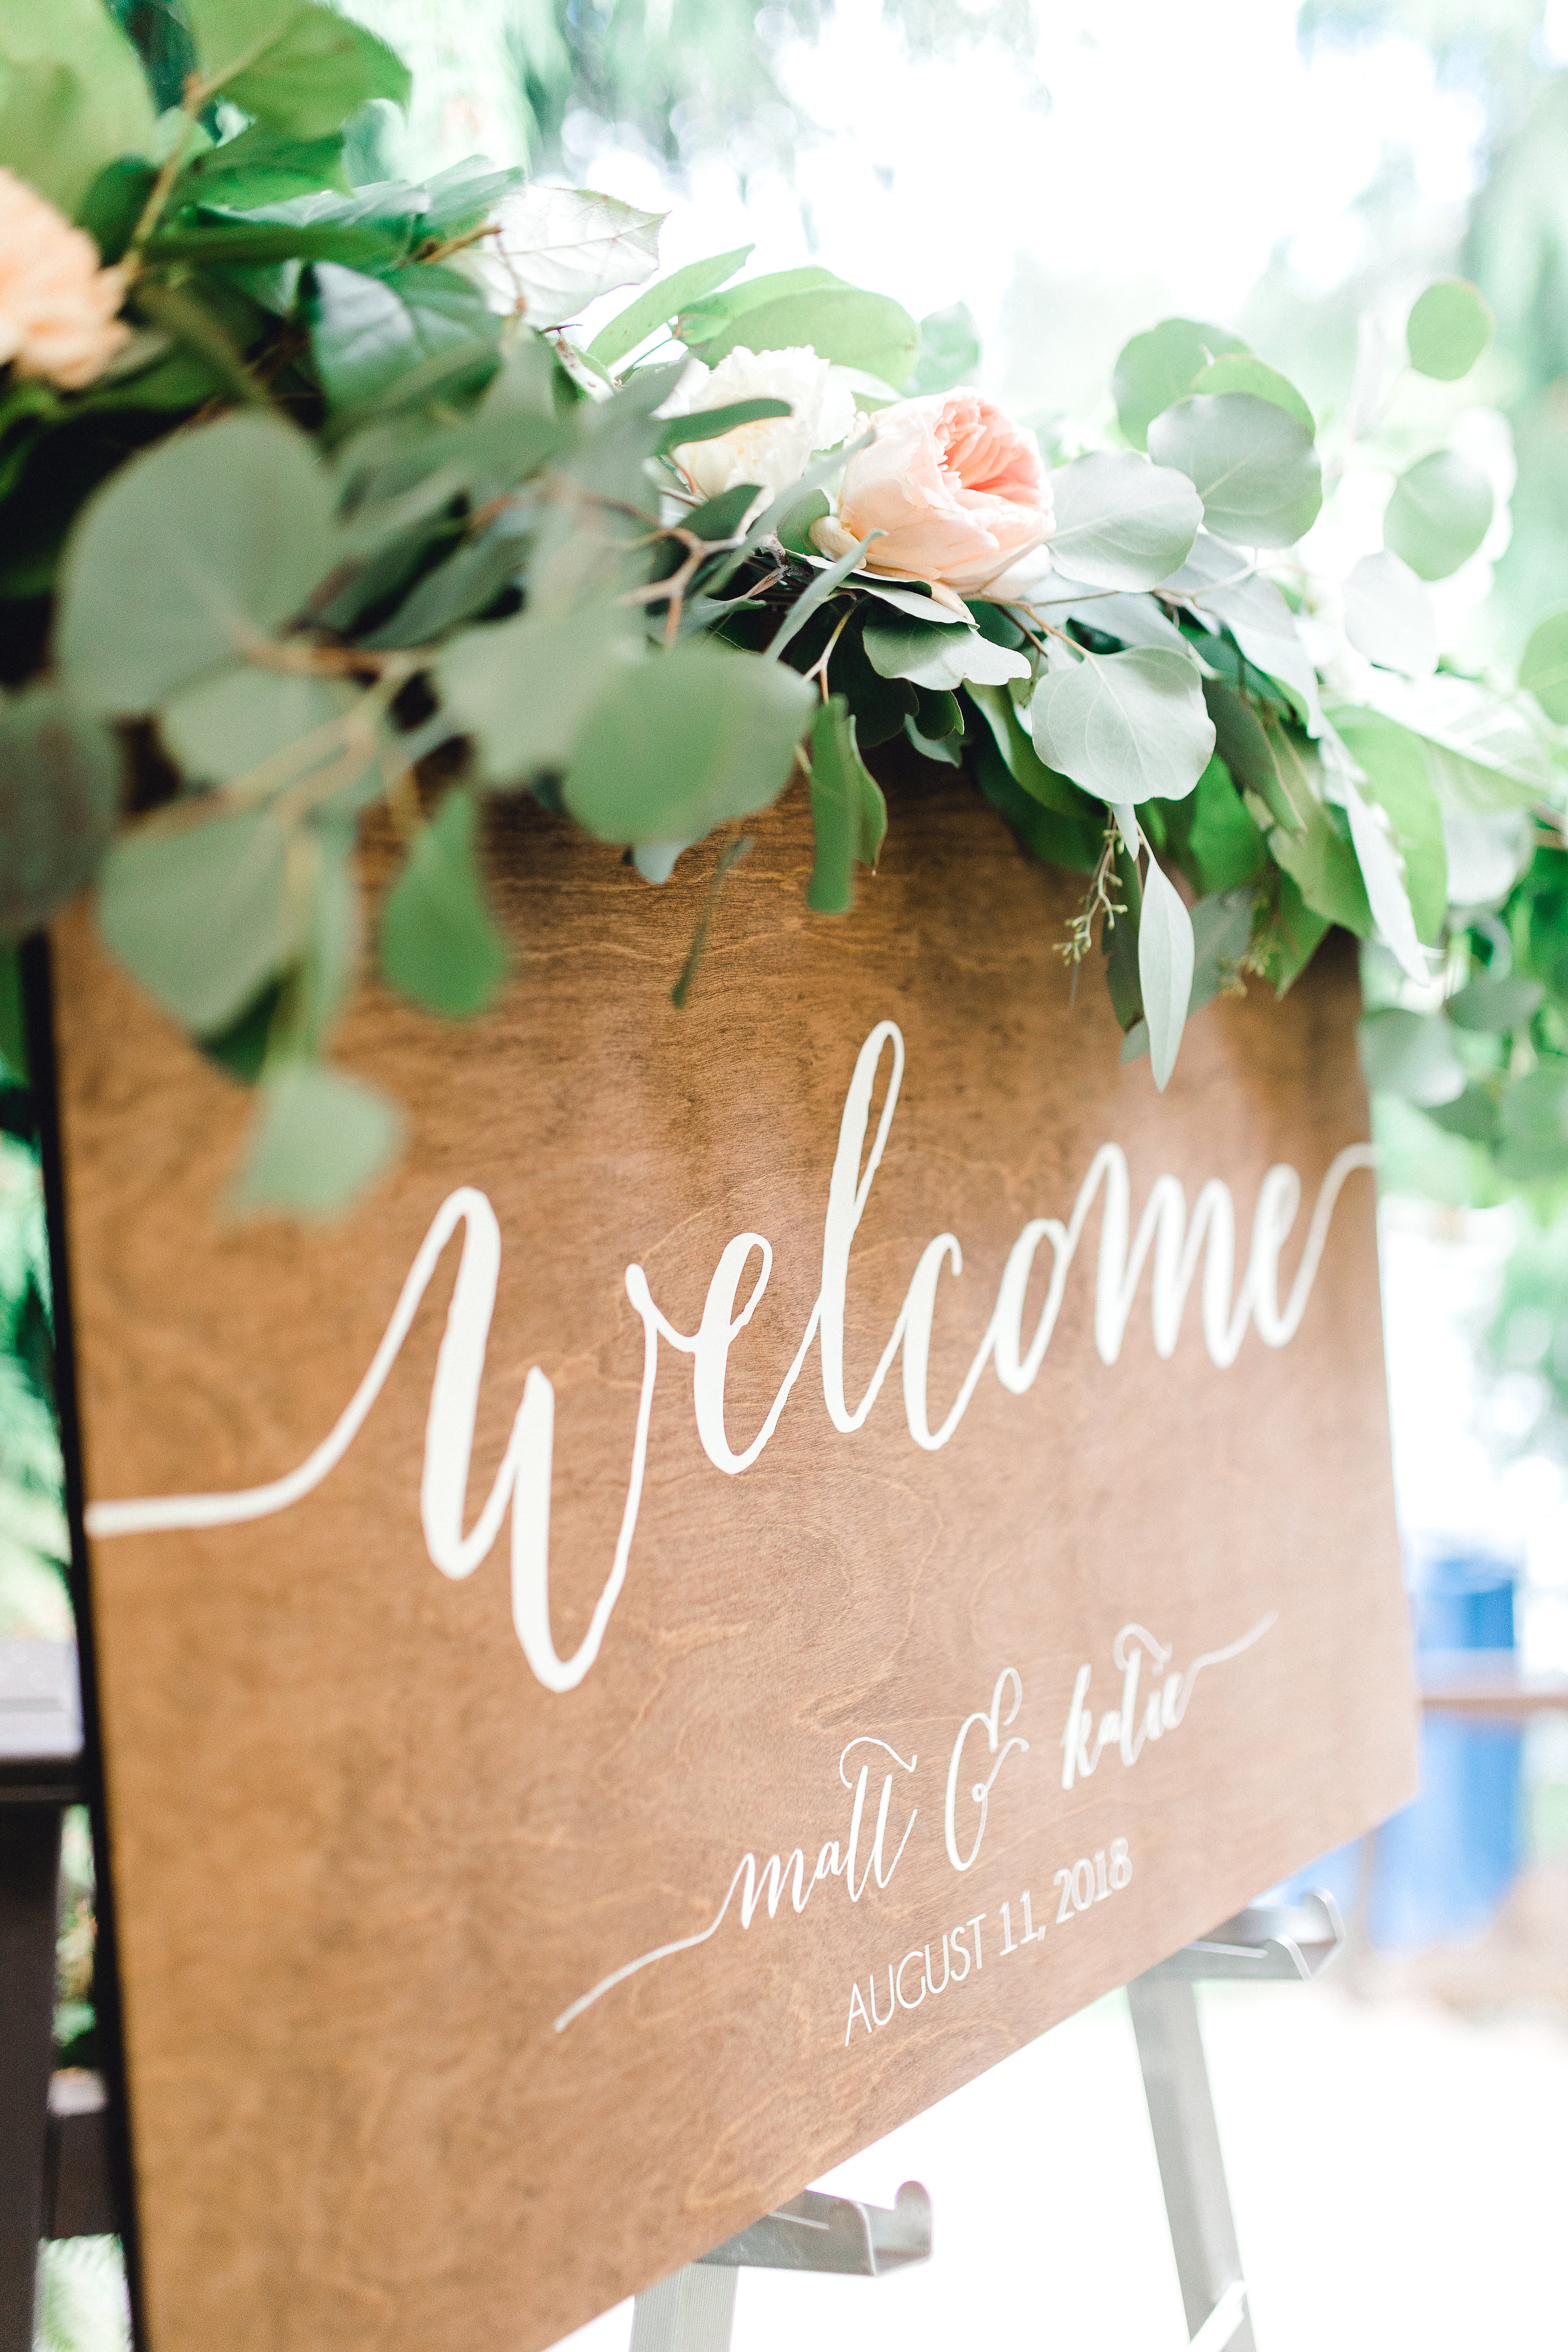 Seattle wedding, Washington wedding, bride and groom, PNW wedding, wedding inspiration, wedding flowers, Seattle bride, wedding sign, wedding decorations